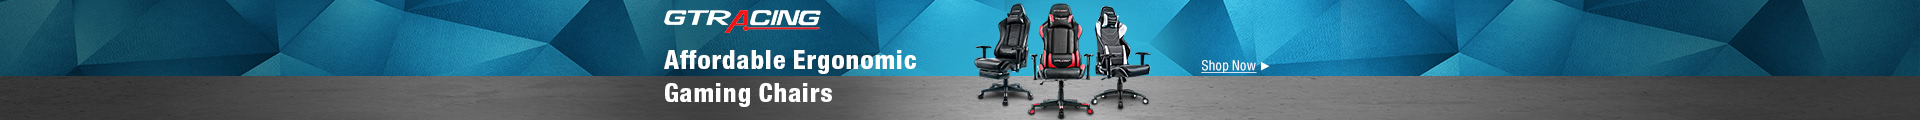 Affordable Ergonomic Gaming Chairs